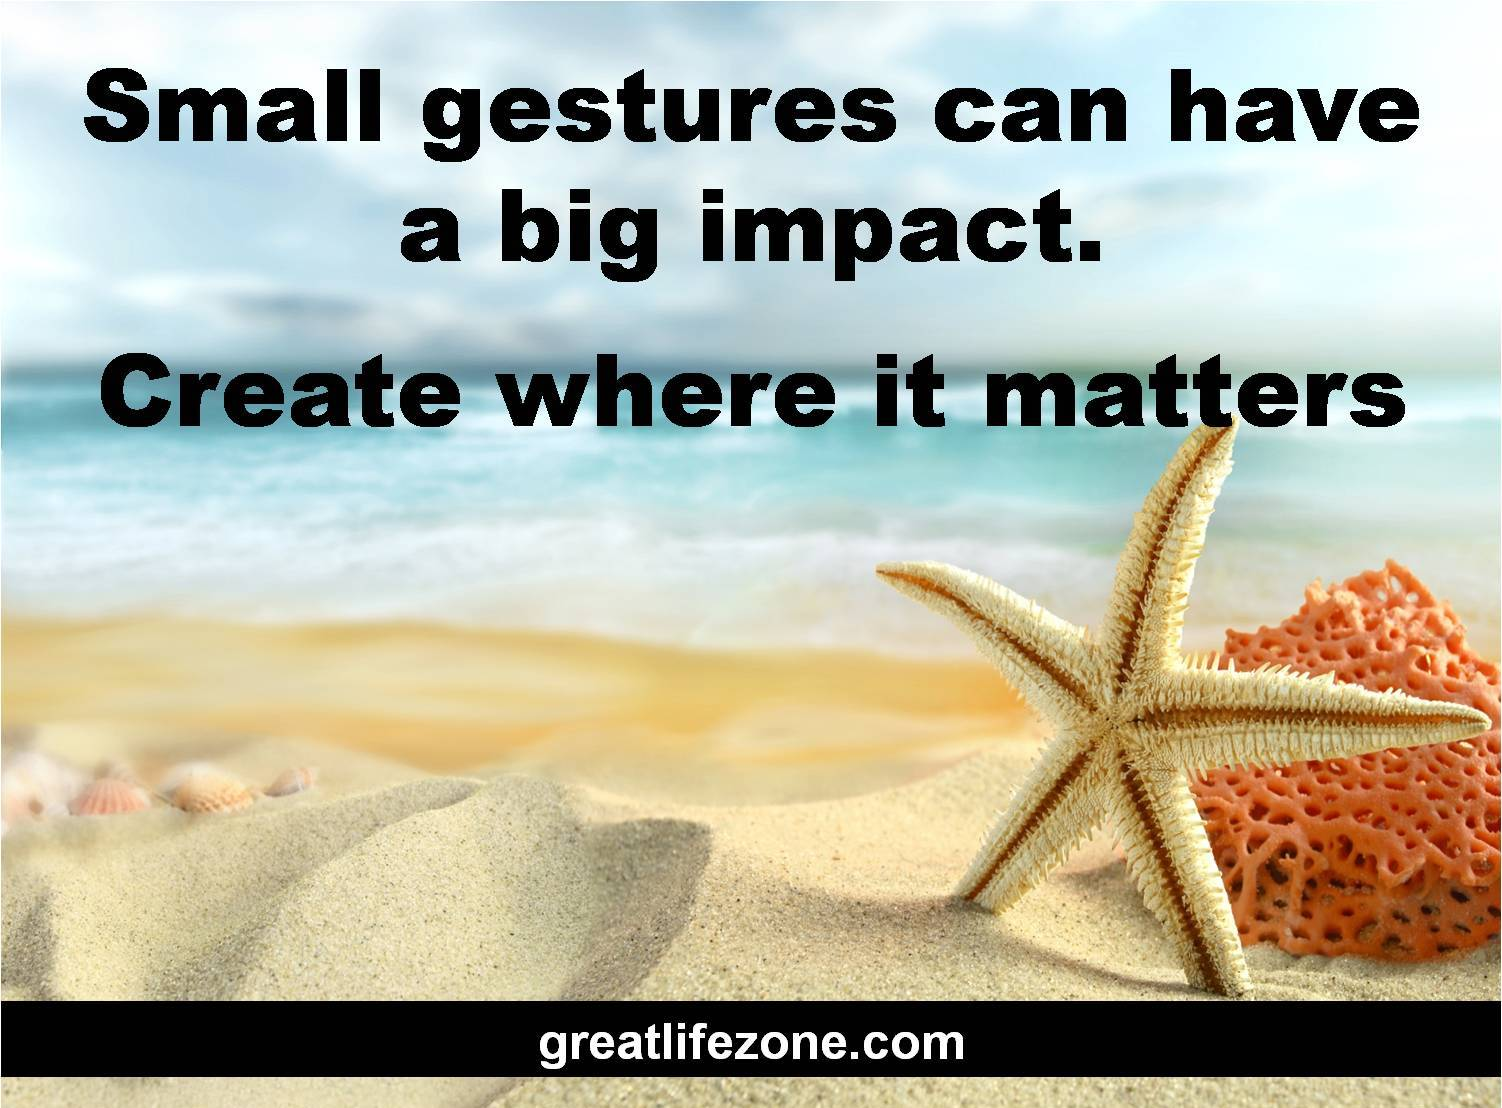 Small gestures can have a big impact